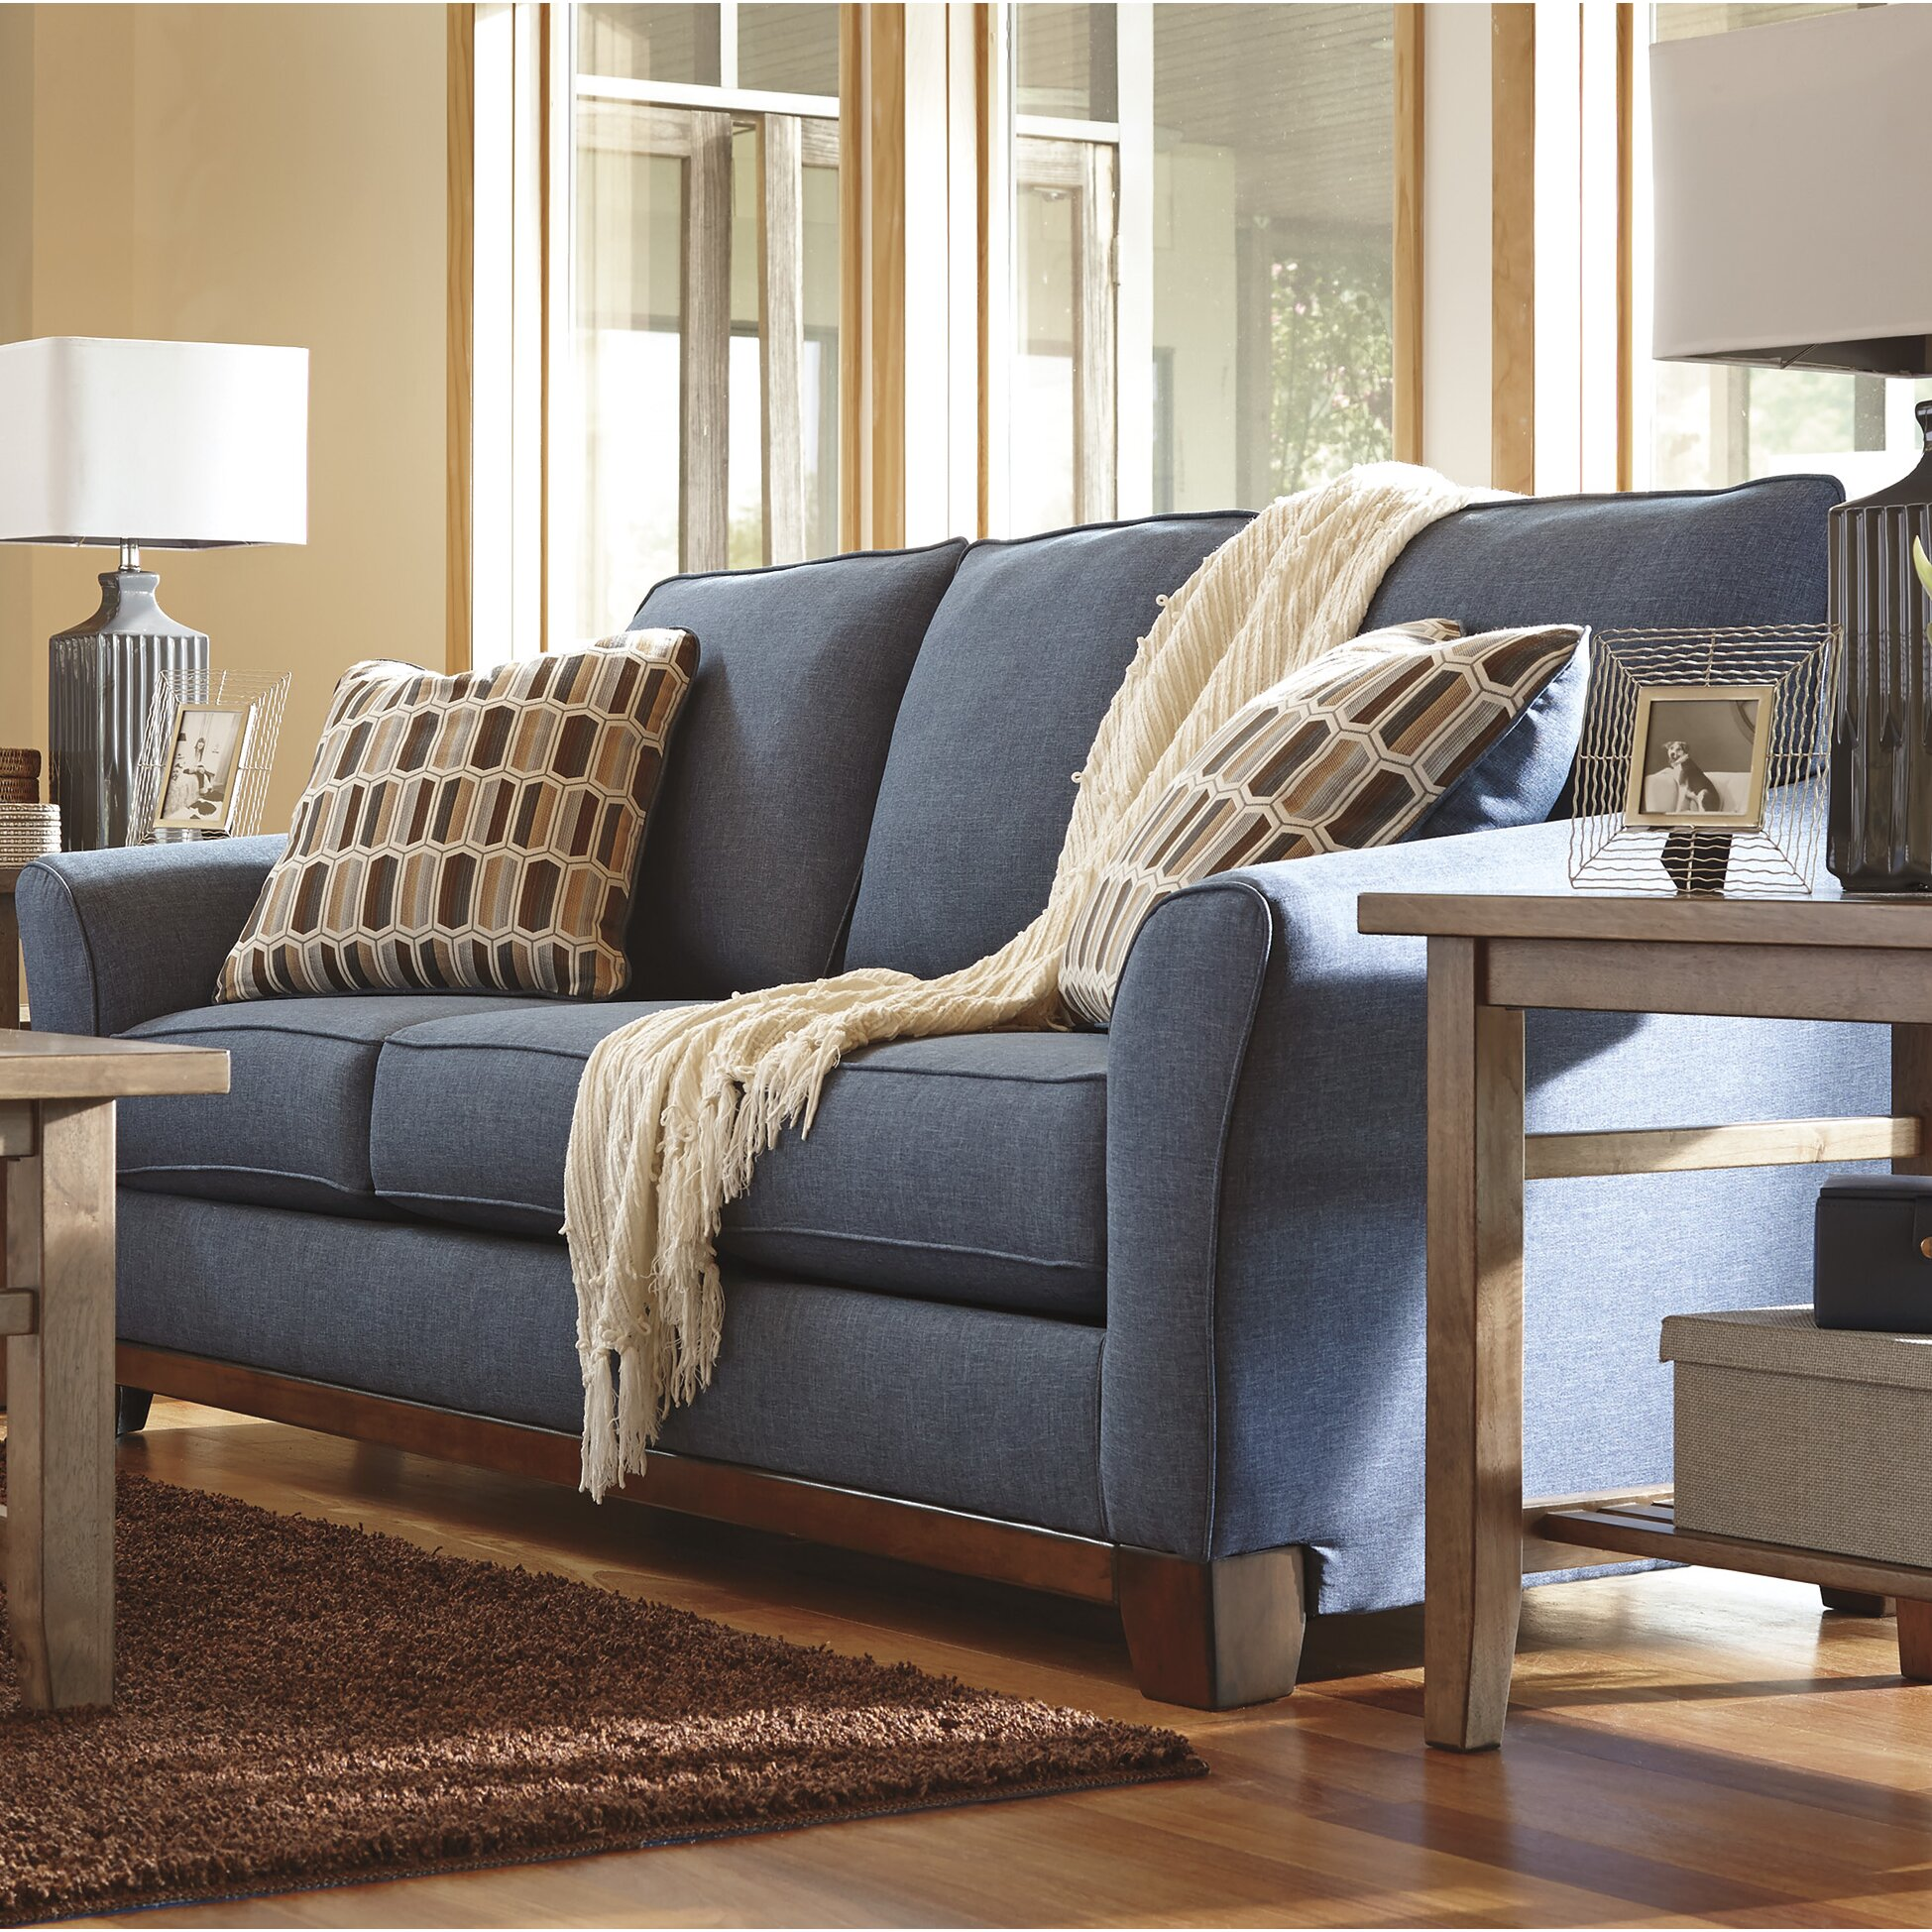 Benchcraft Janley Denim Sofa Amp Reviews Wayfair